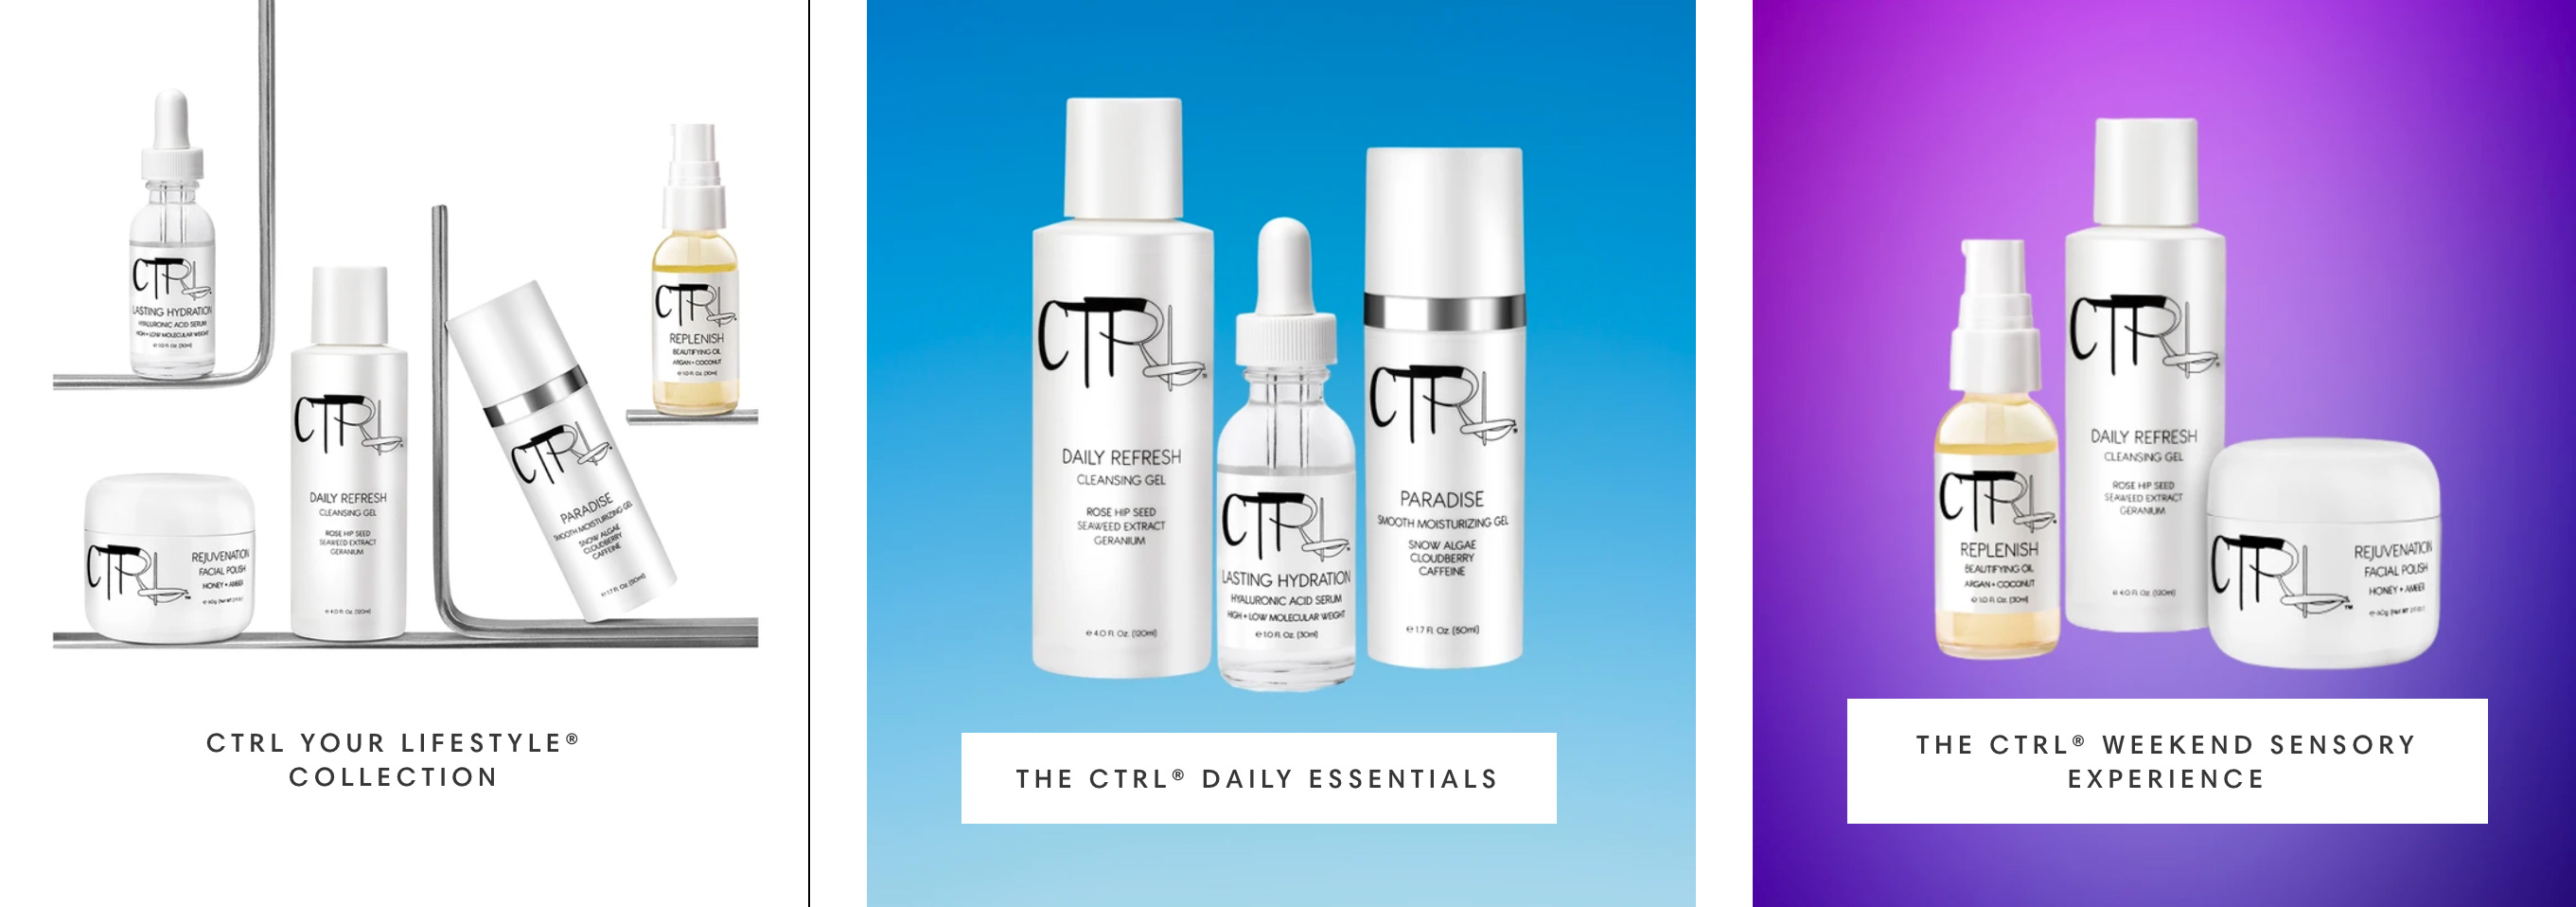 CTRL Cosmetics website design and images before the redesign showcasing different products against different colored backdrops.